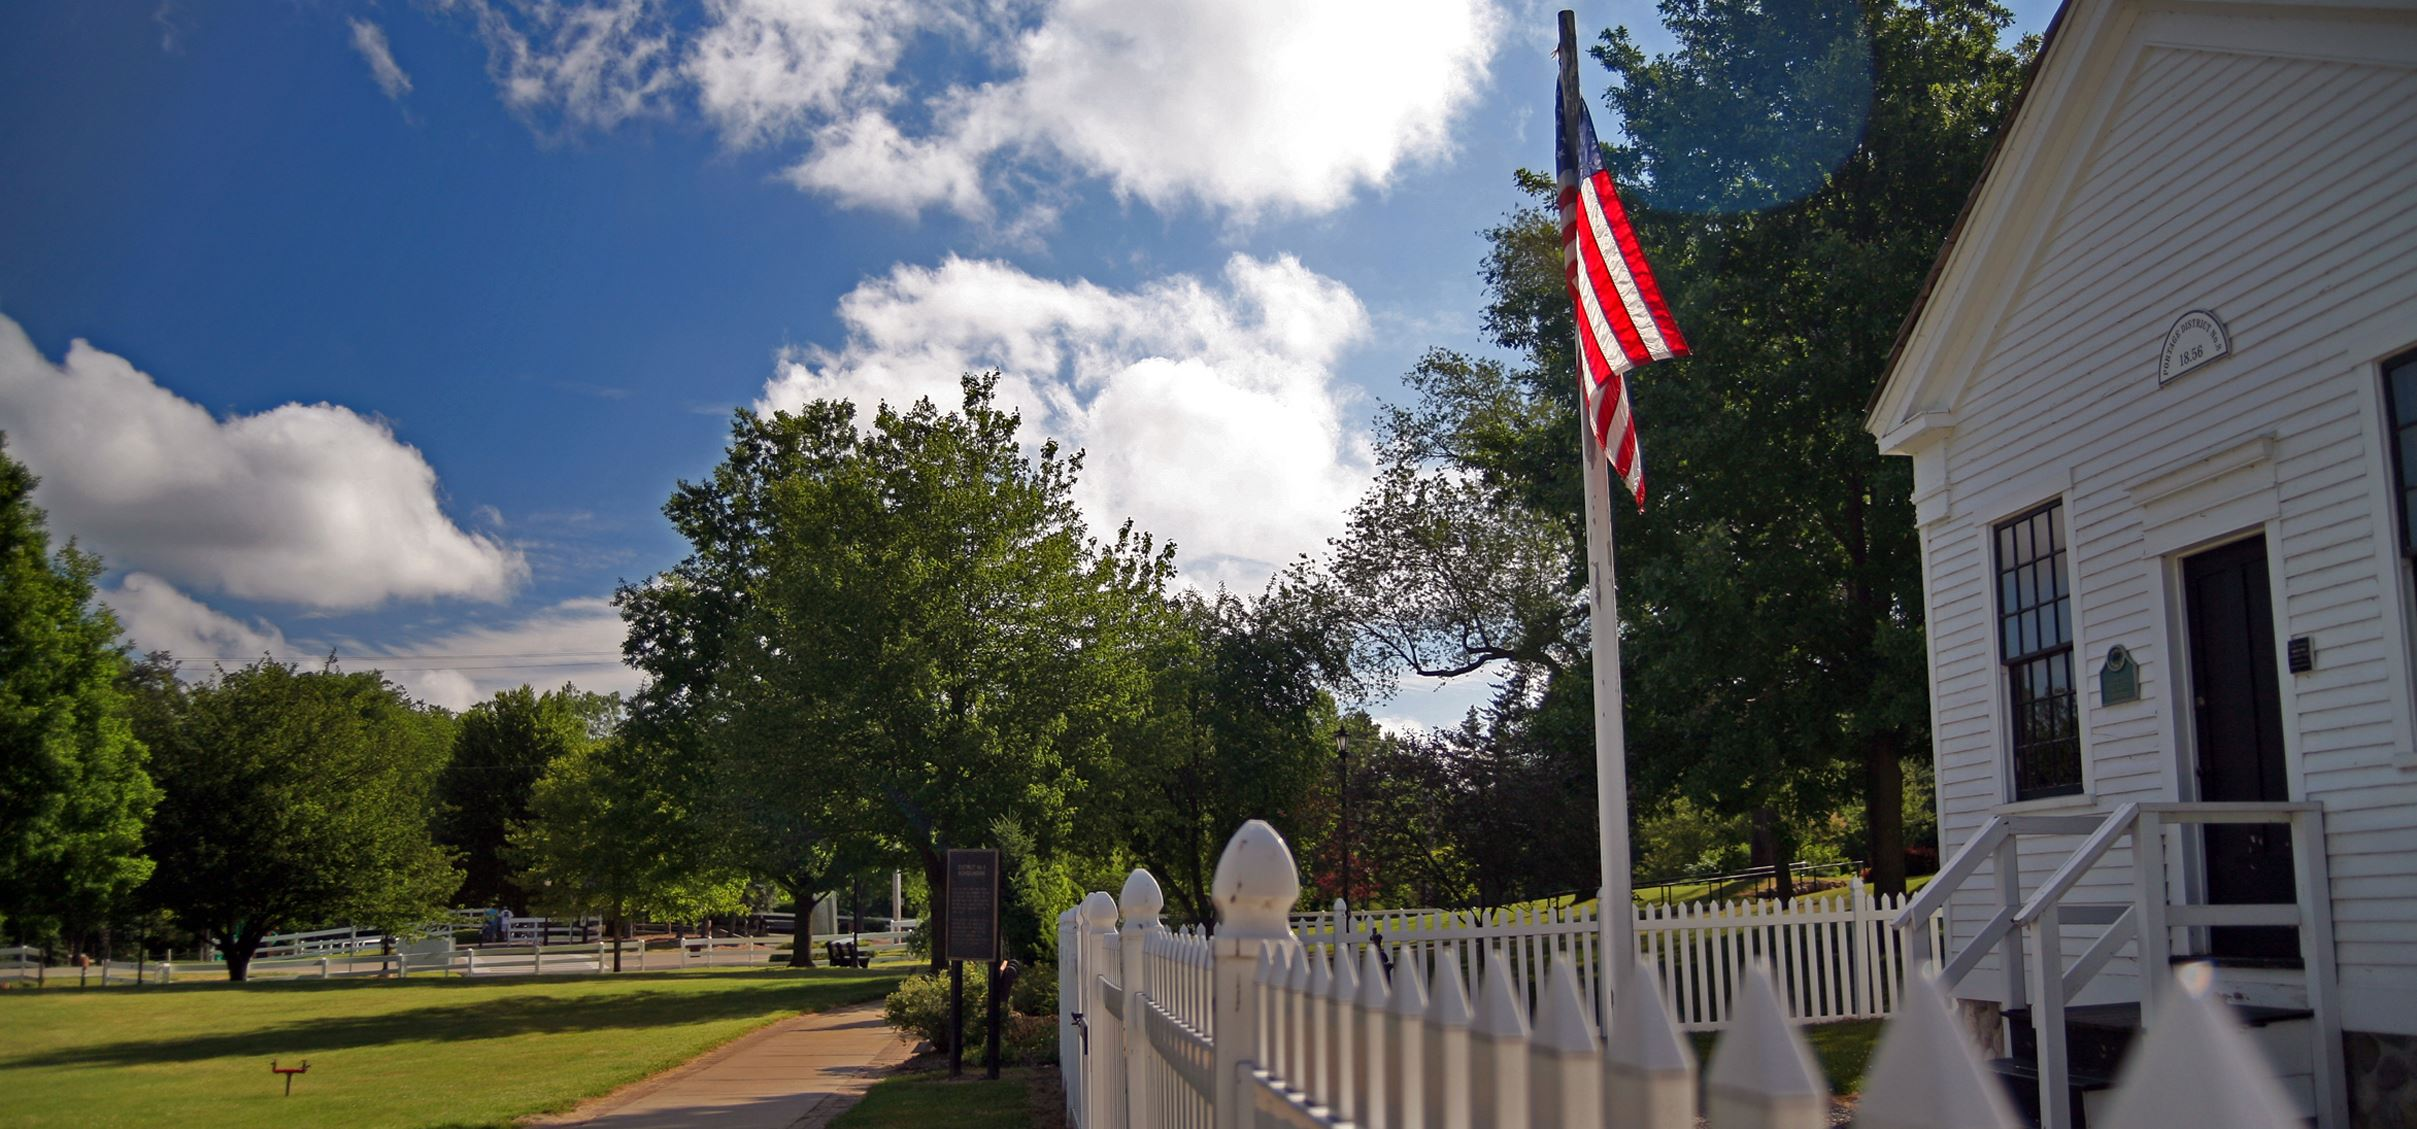 Celery Flats - View of american flag on pole outside picturesque white building